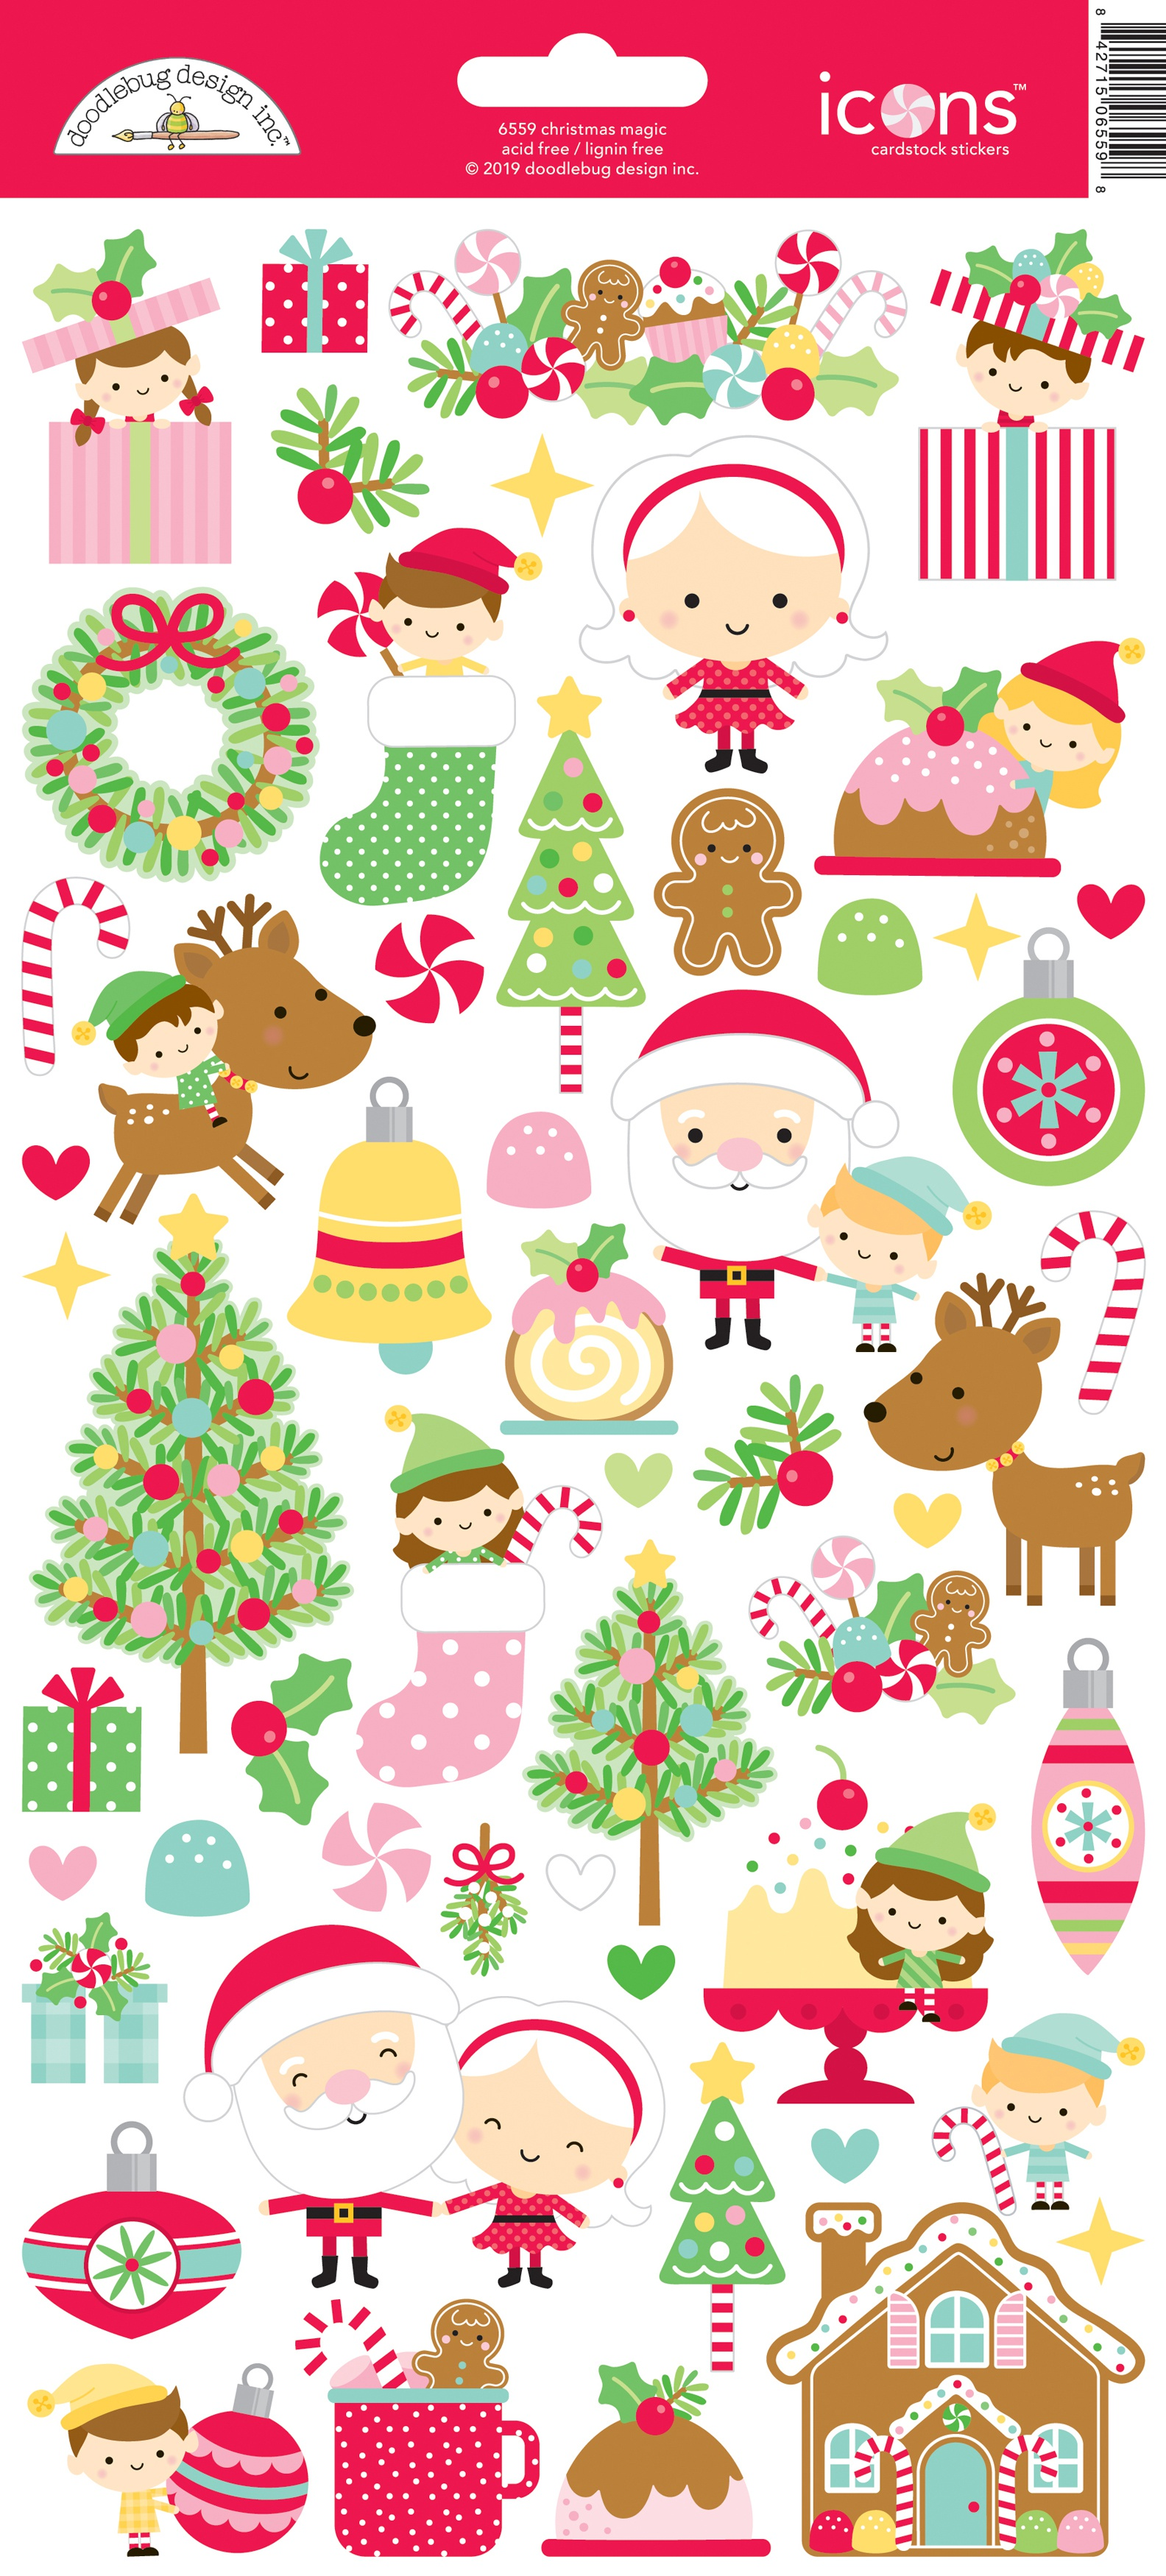 Doodlebug Cardstock Stickers 6X13-Christmas Magic Icons